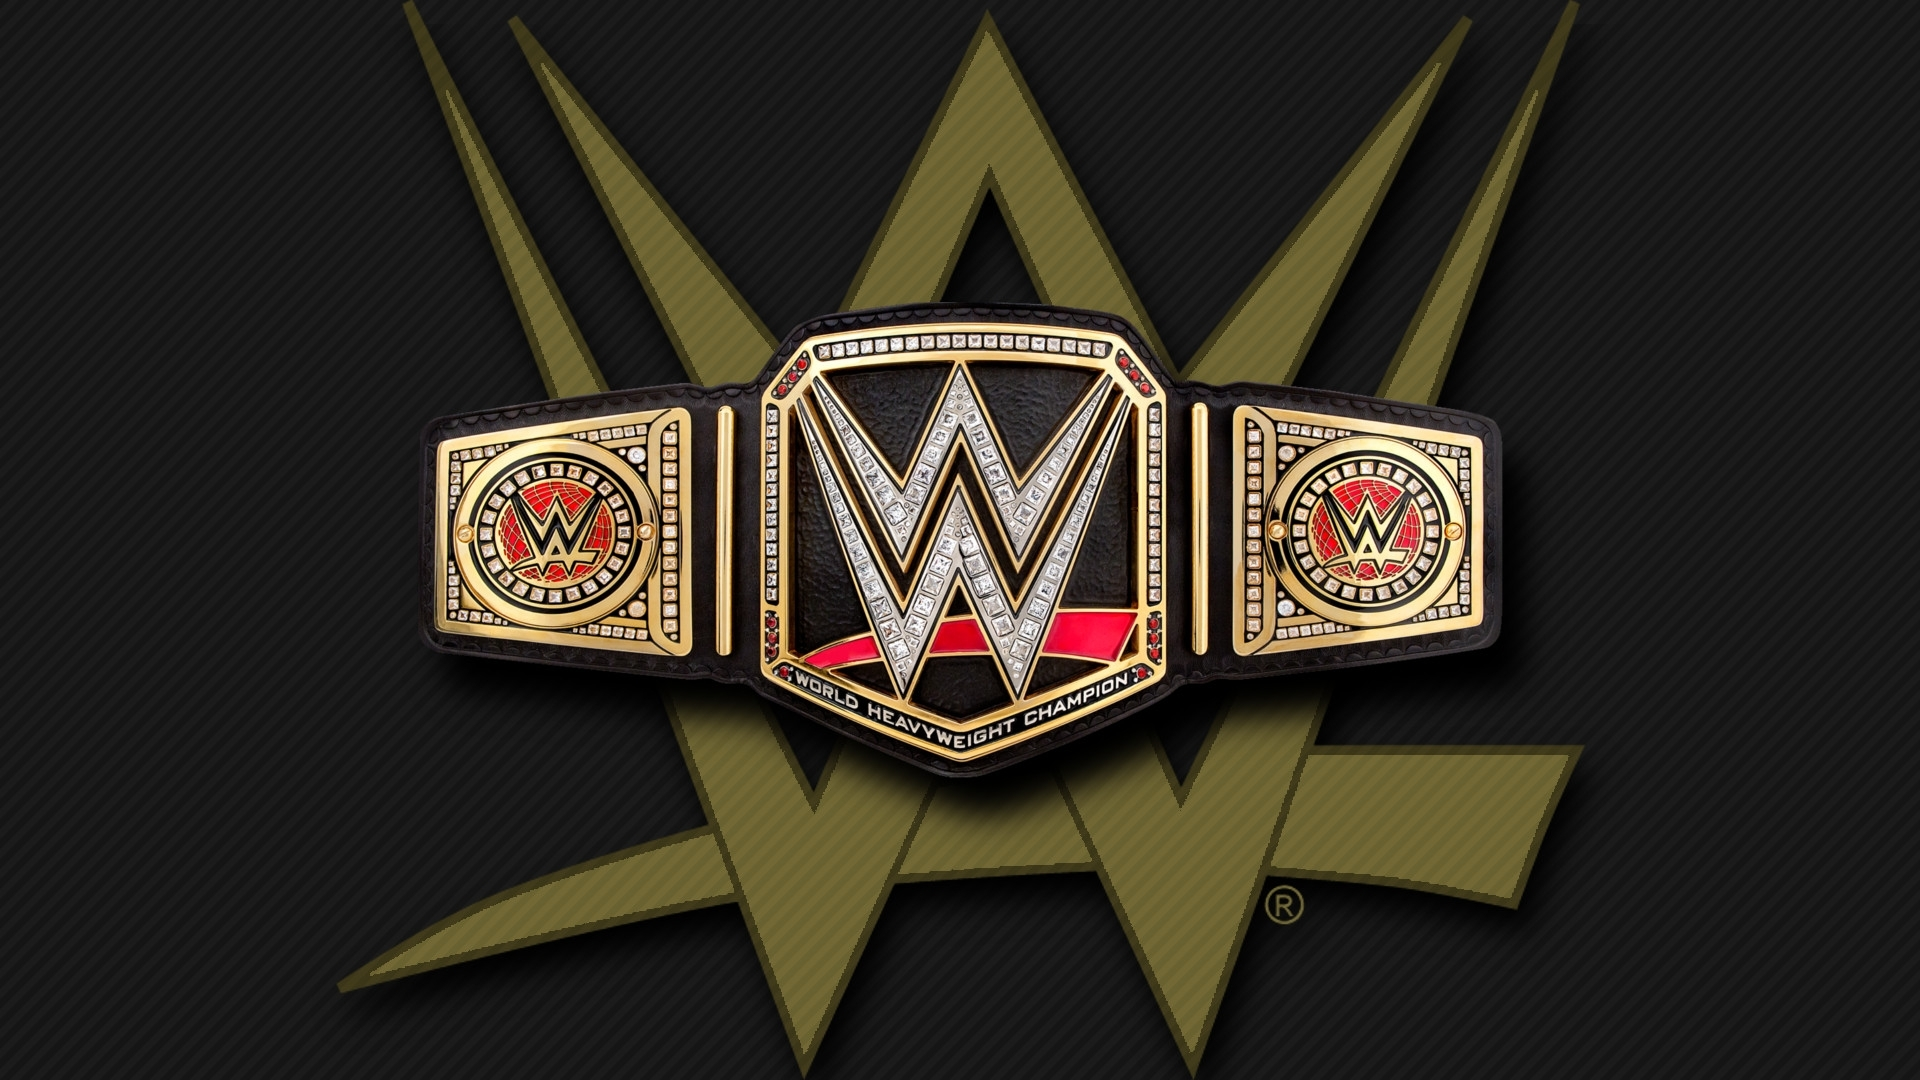 wwe championship wallpaper (77+ images)